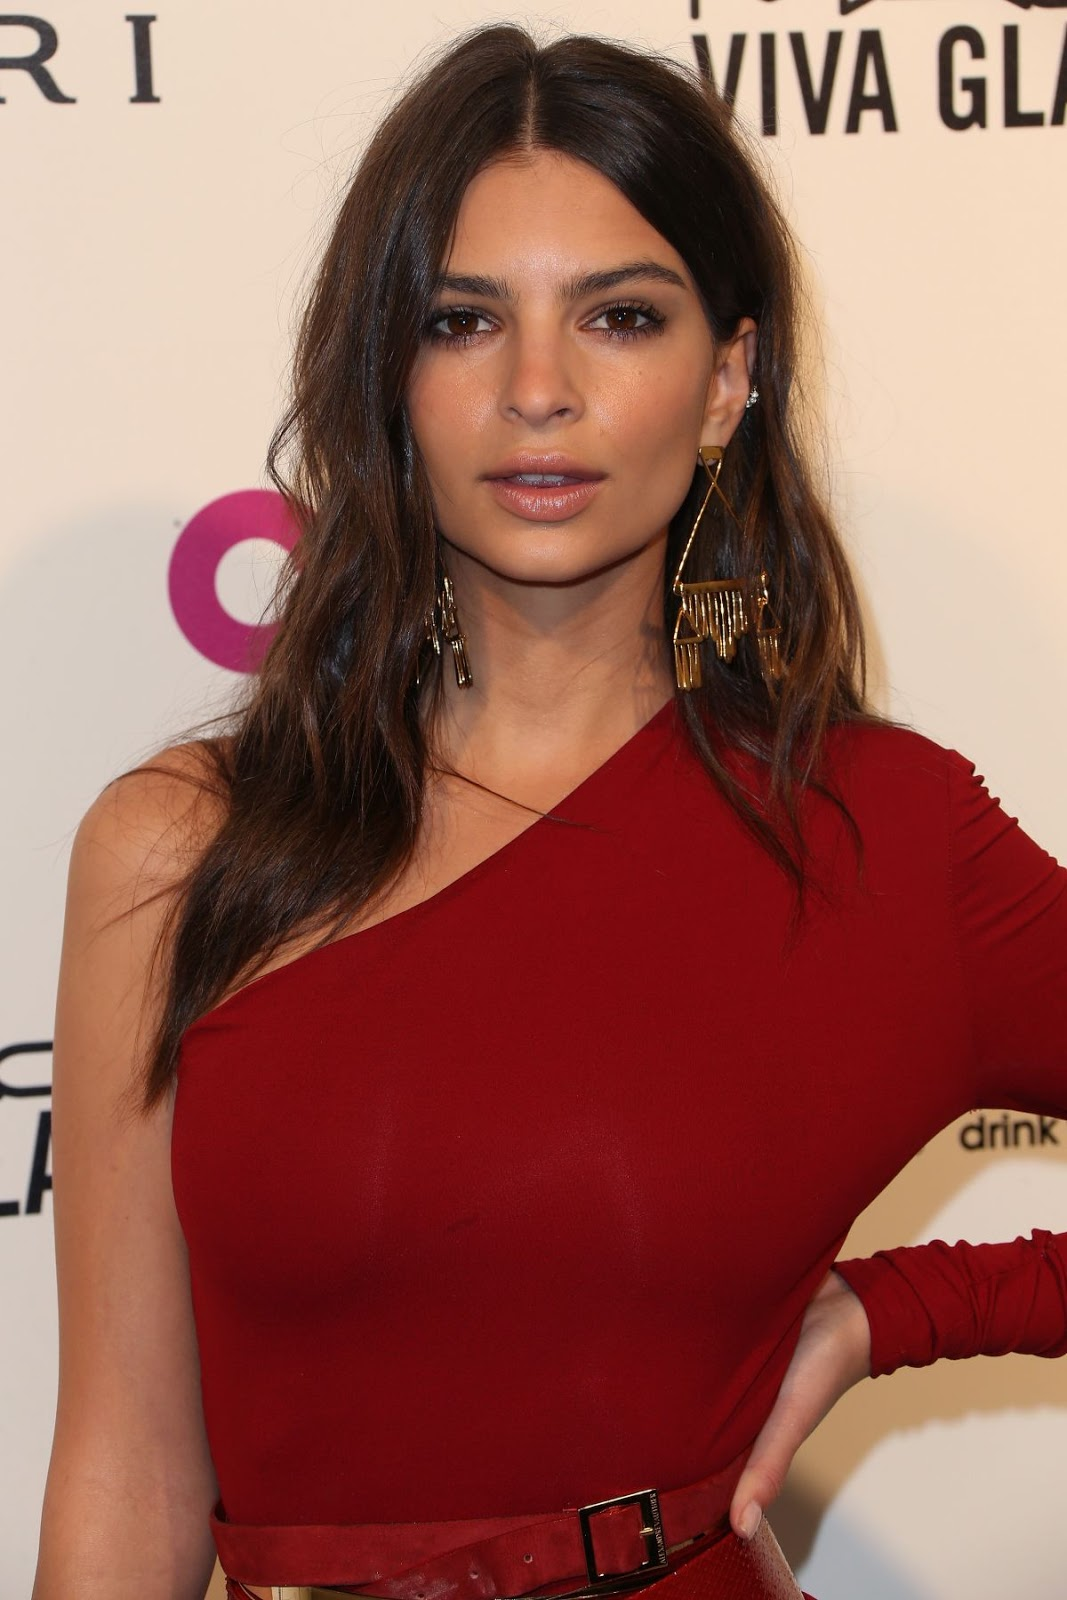 Entourage actress Emily Ratajkowski at Elton John Aids Foundation's Oscar Viewing Party